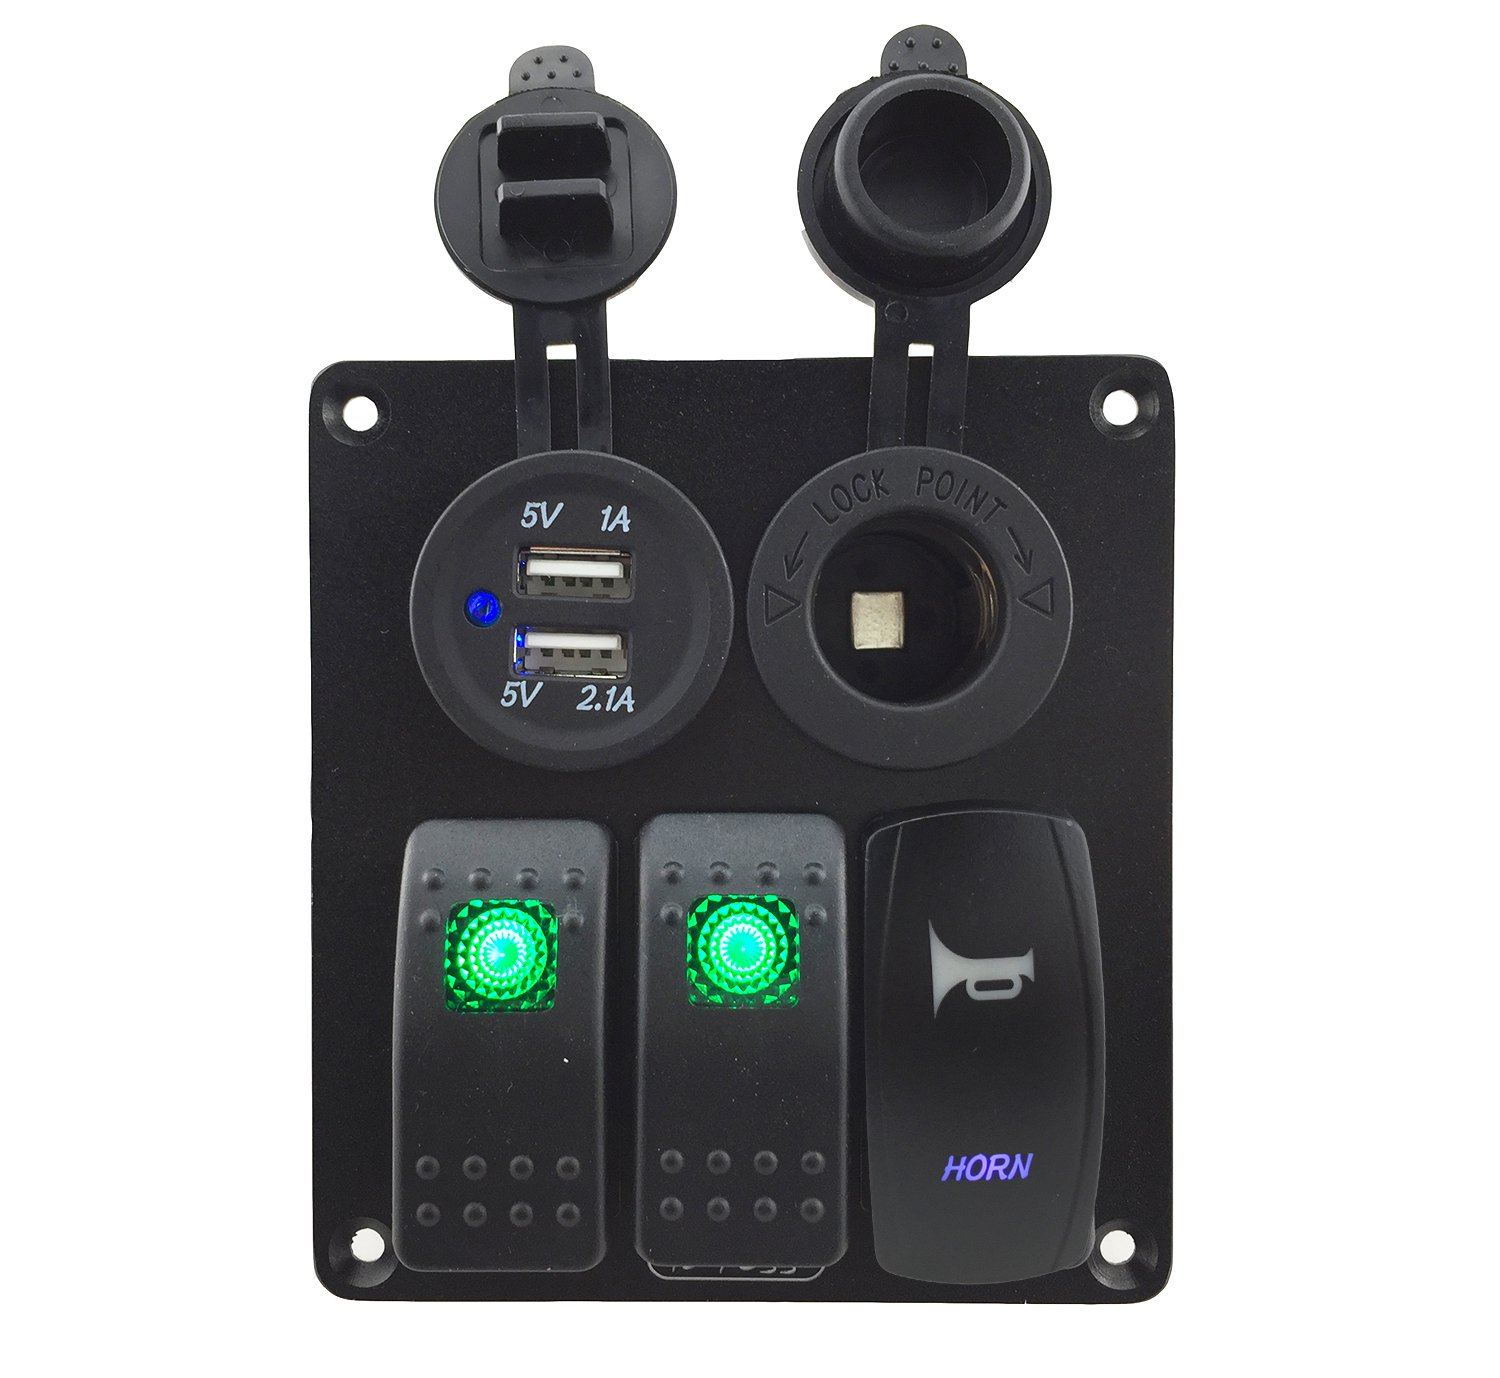 IZTOSS 3 gang rocker switch and horn switch panel with power socket 3.1A dual USB wiring kits and Decal Sticker Labels DC12V/24V for Marine Boat Car Rv Vehicles Truck green led by IZTOSS